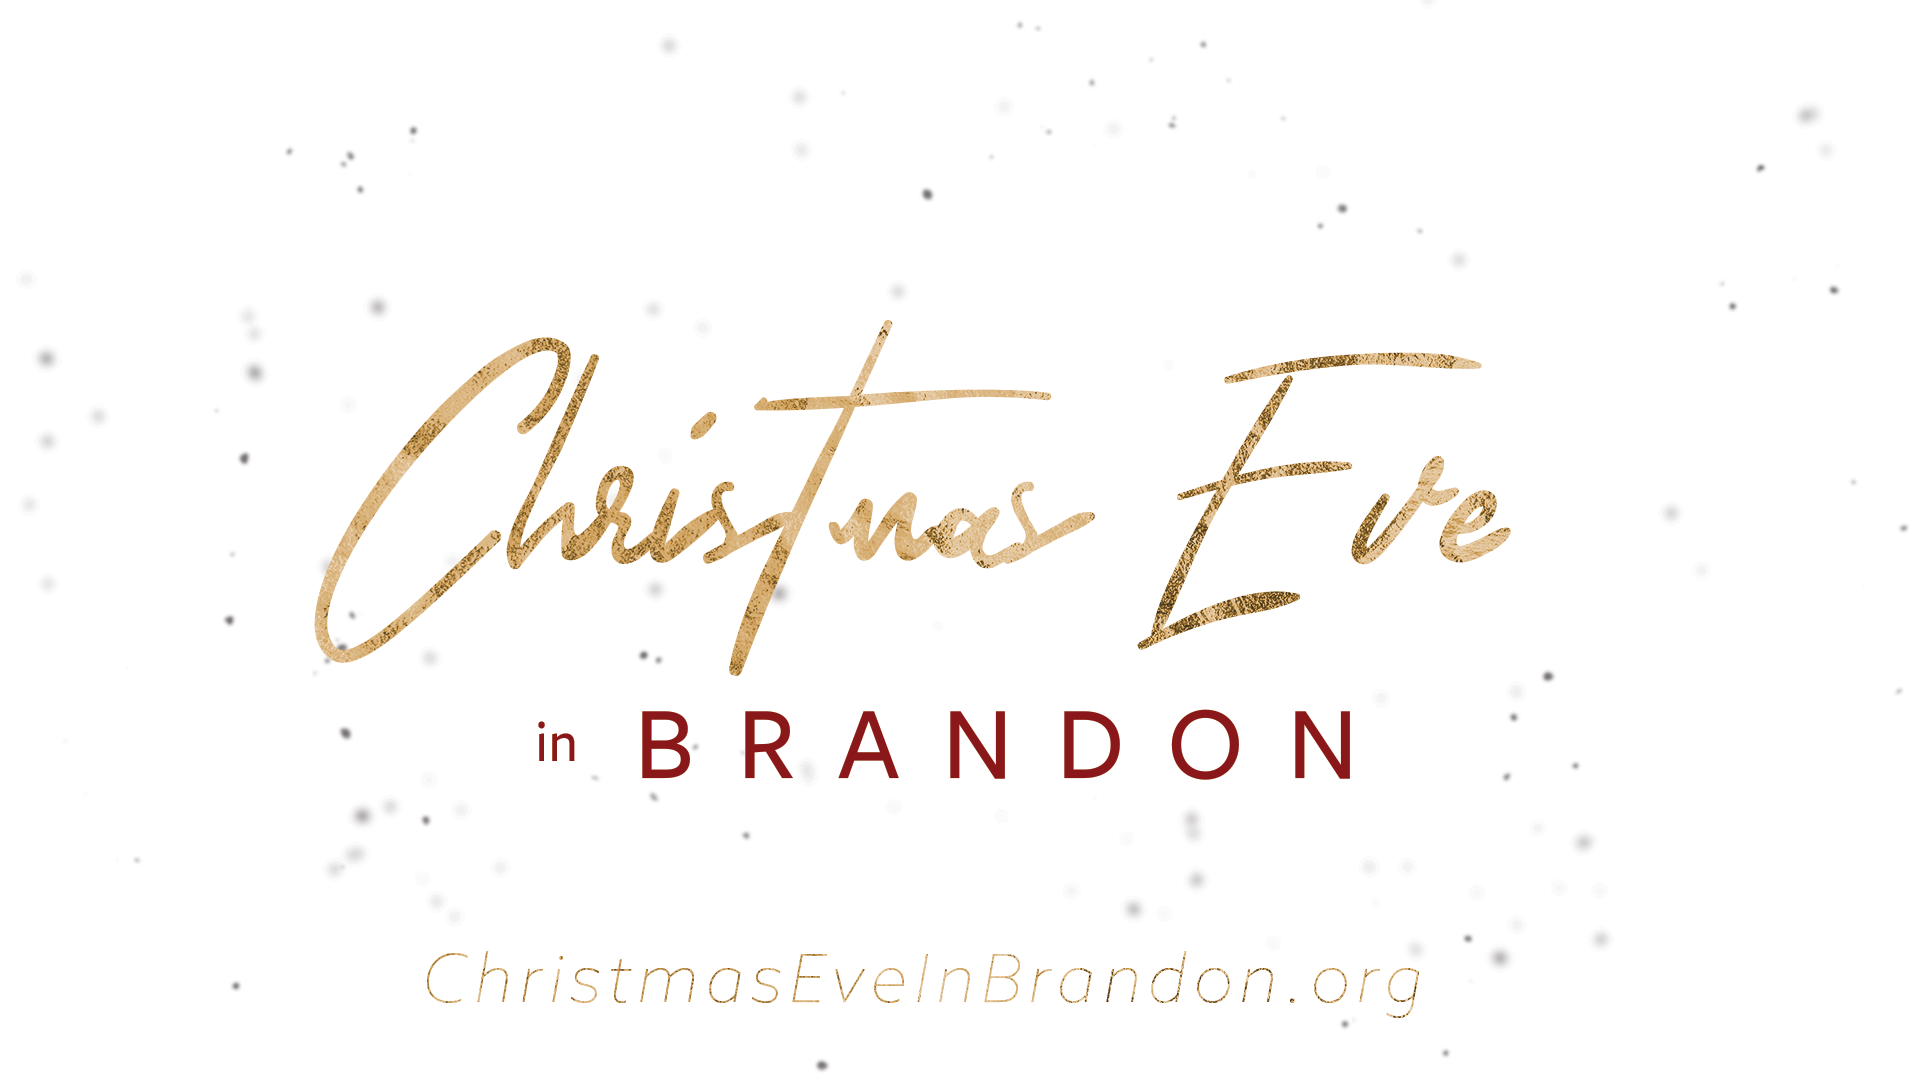 christmaseveinbrandon_slide.png